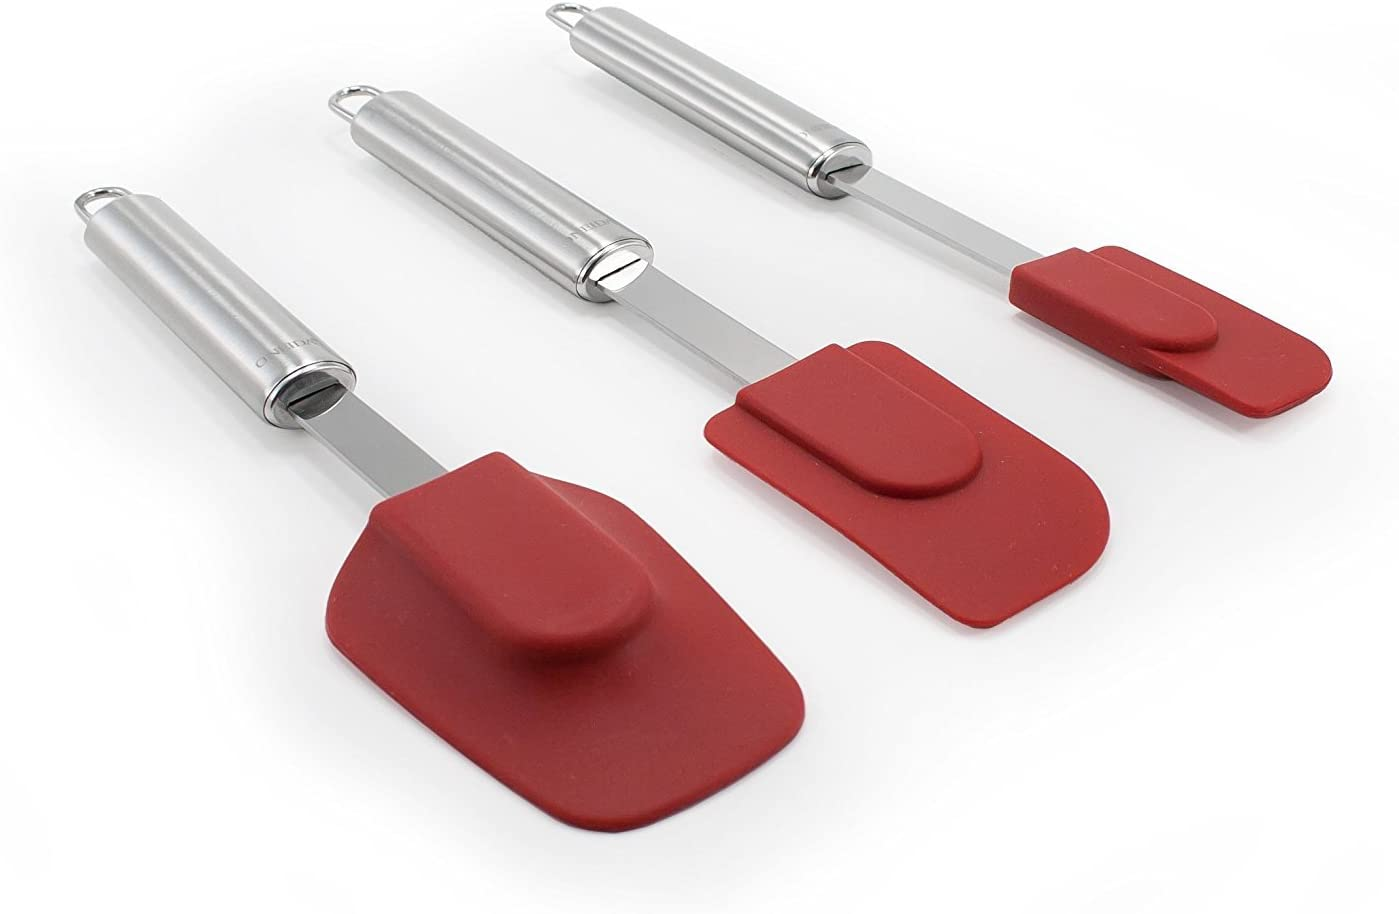 Oneida Stainless Steel Spatulas with Silicone Head, Set of 3